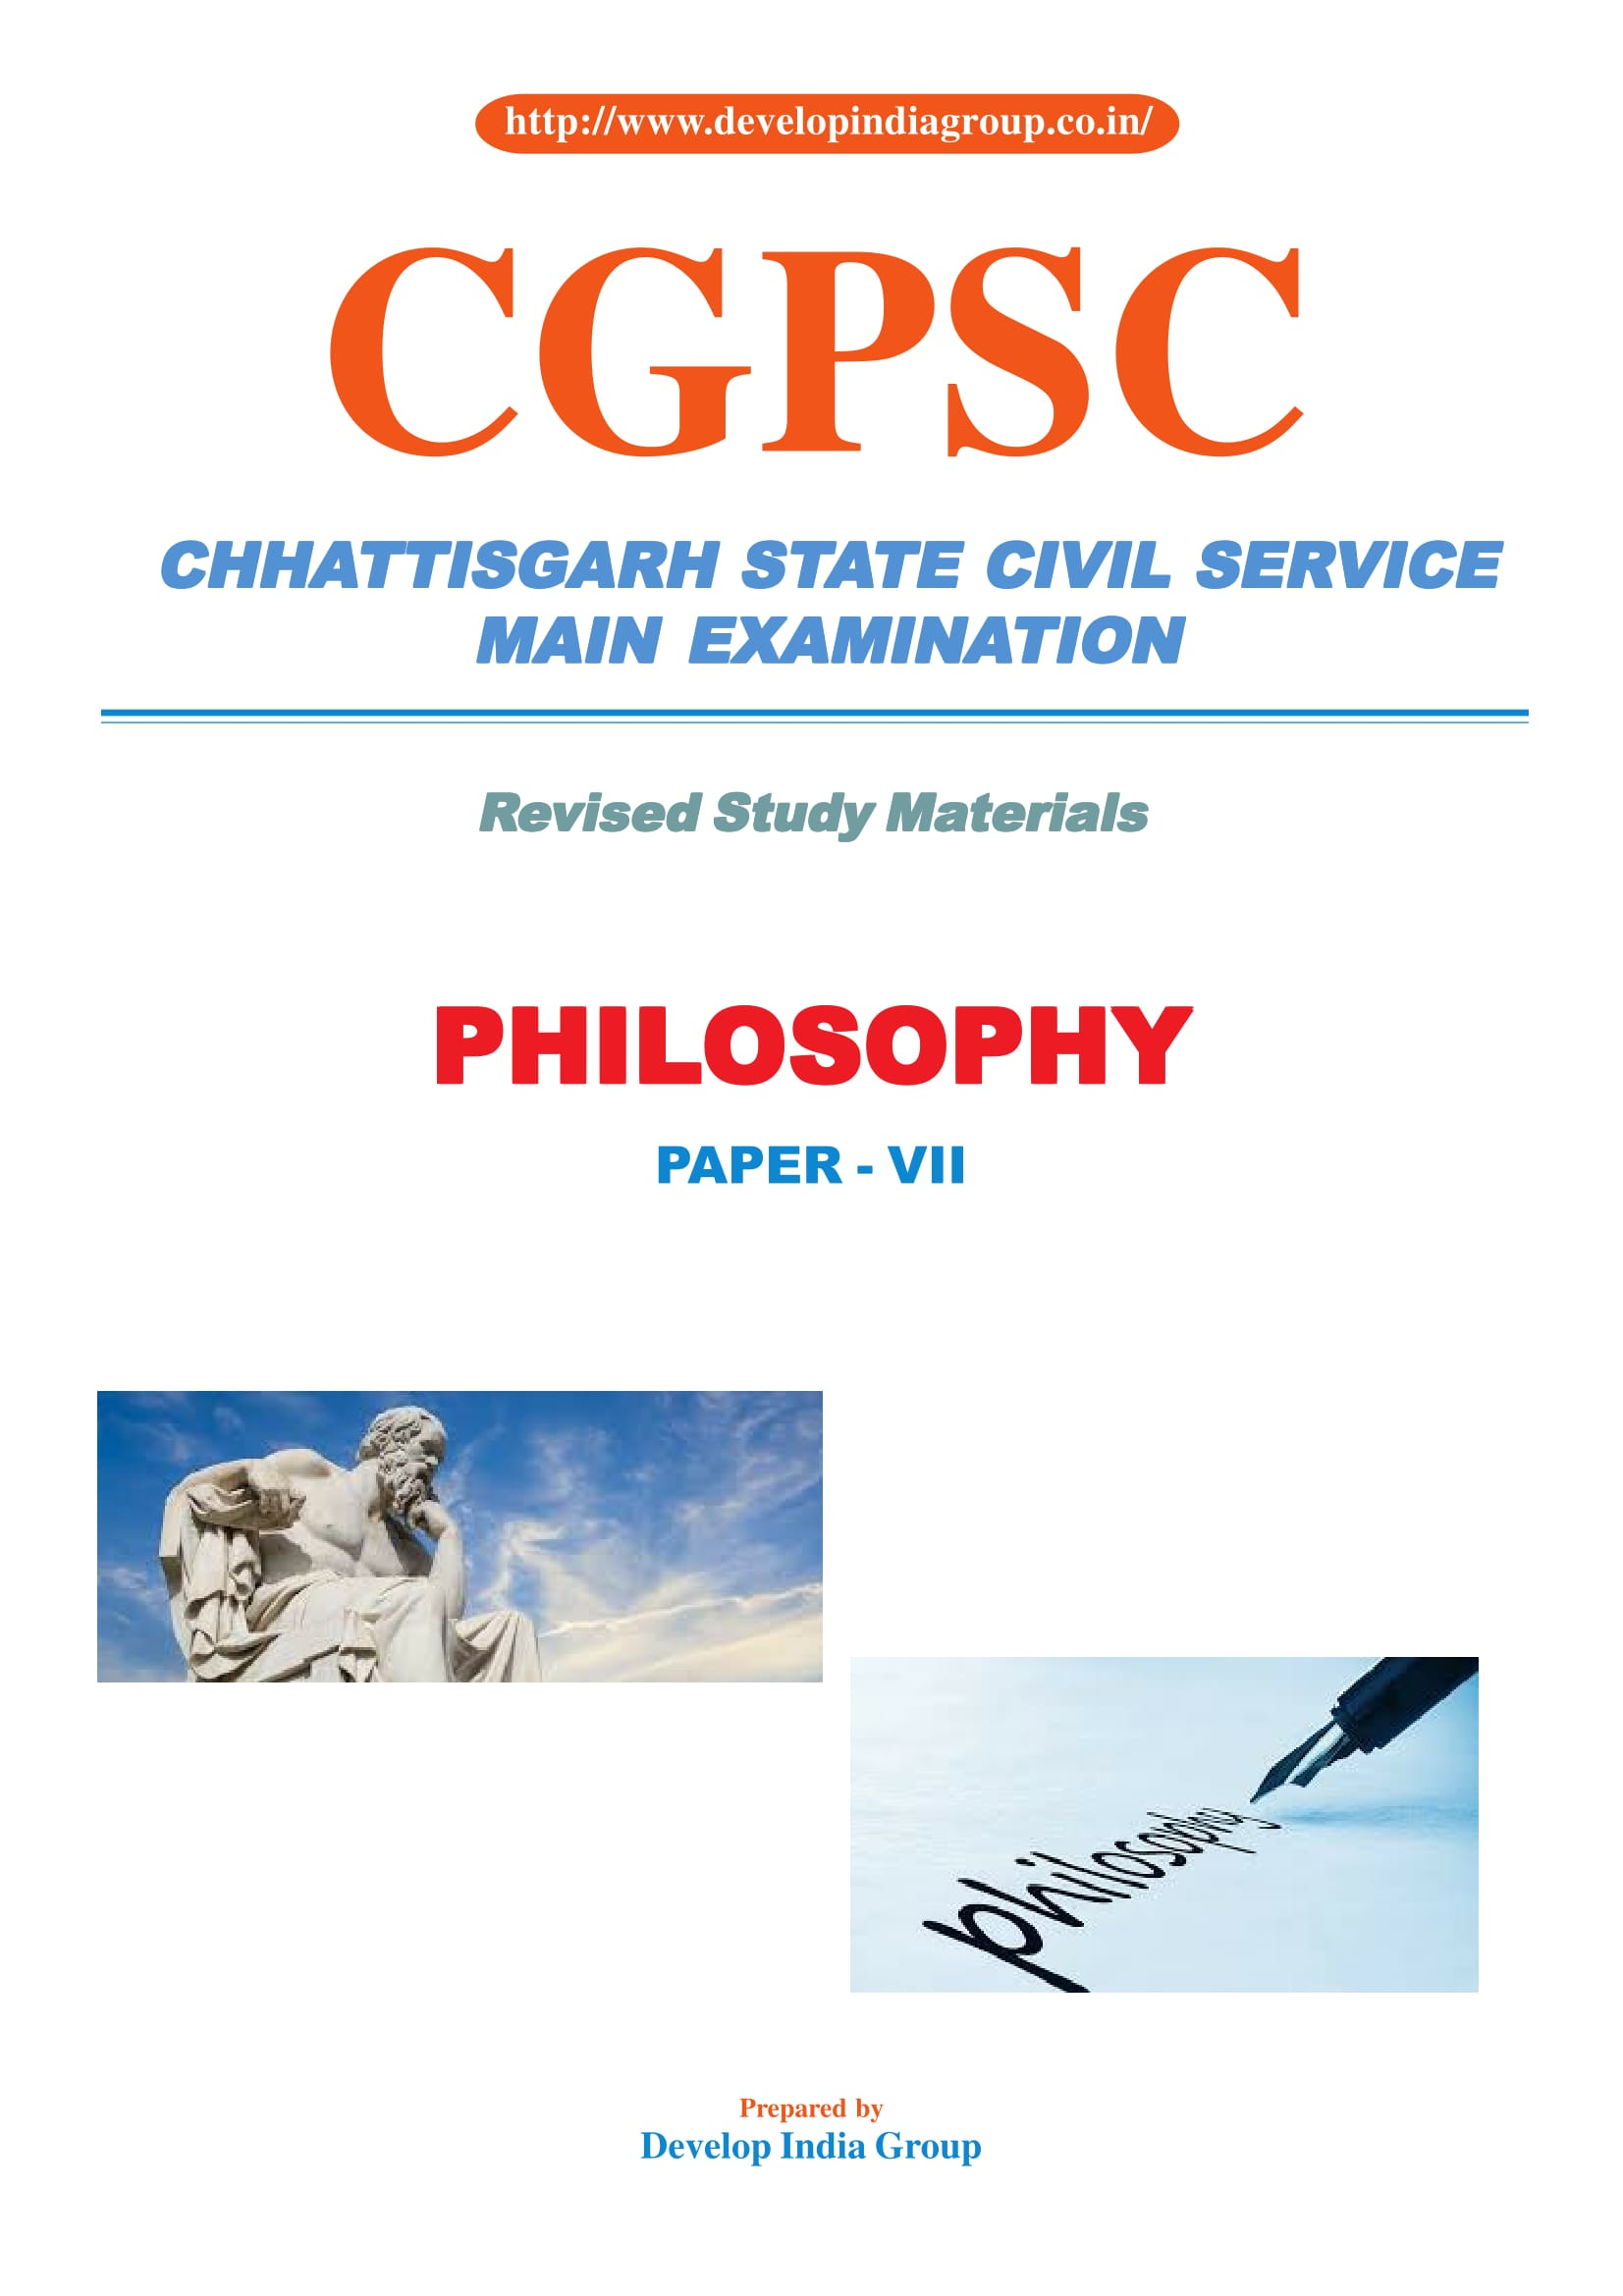 CGPSC_Main_Exam_Paper_7_Philosophy